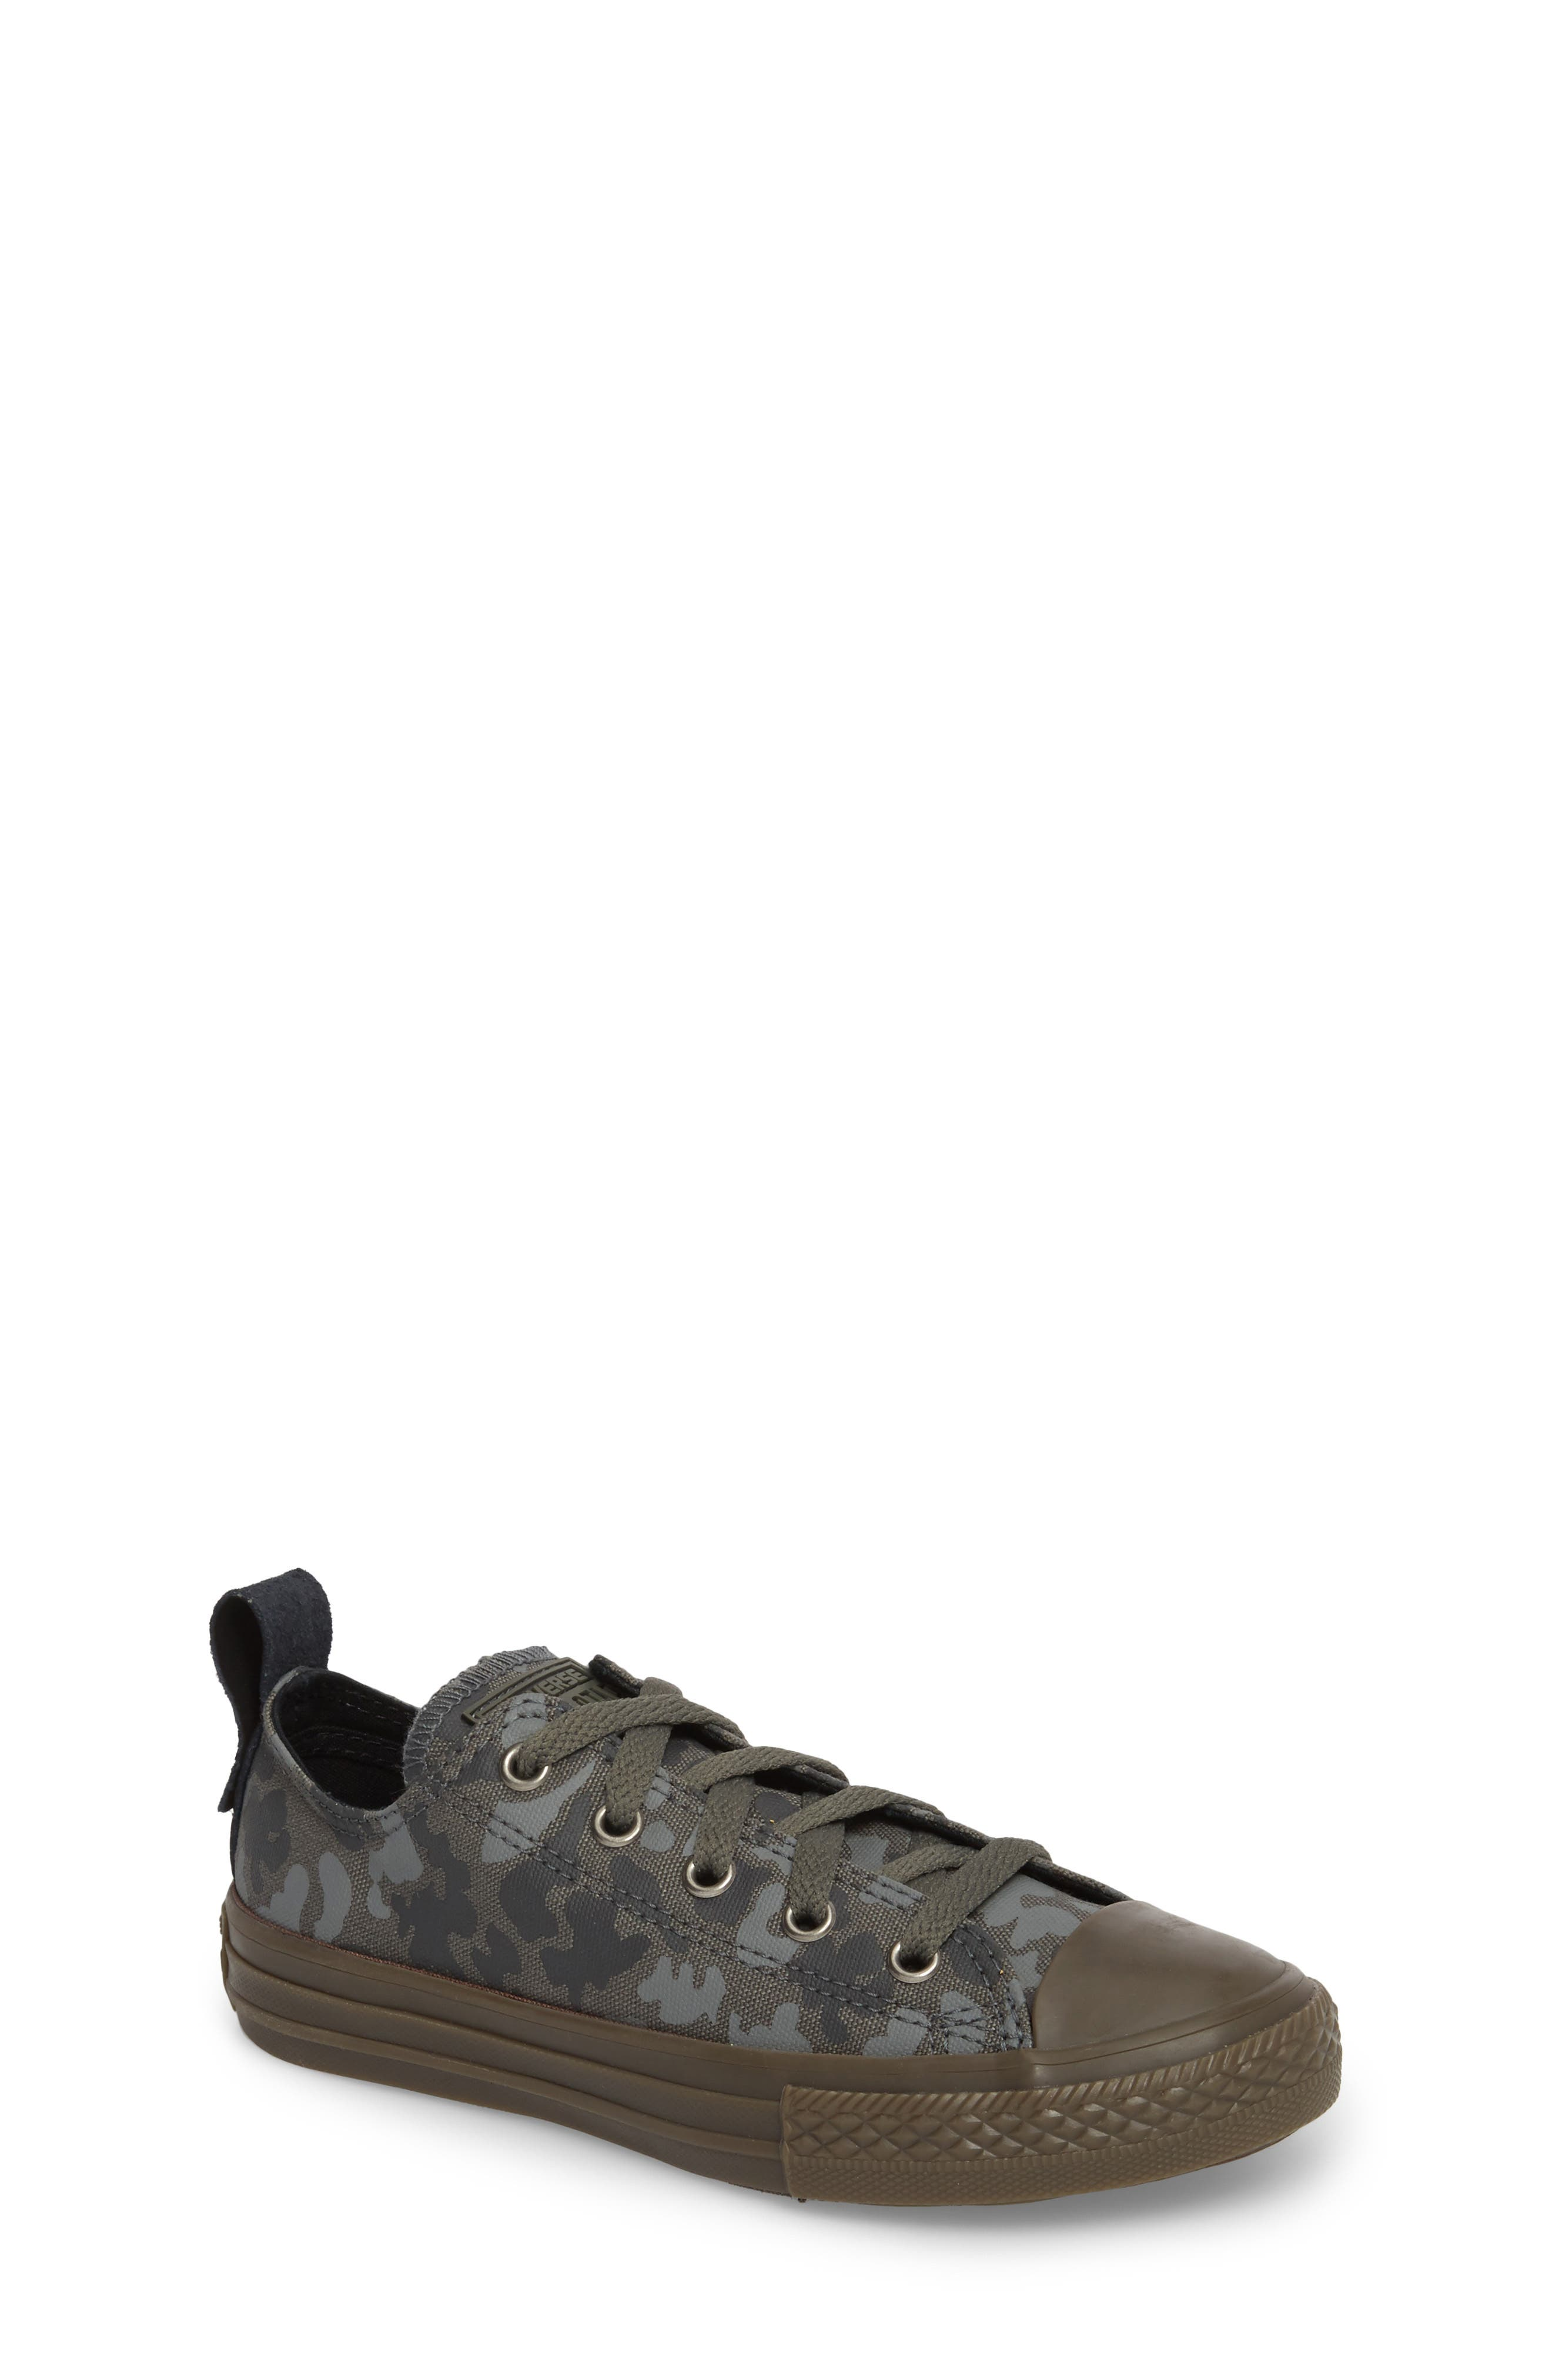 Chuck Taylor<sup>®</sup> All Star<sup>®</sup> Camo Ox Low Top Sneaker,                         Main,                         color, Mason